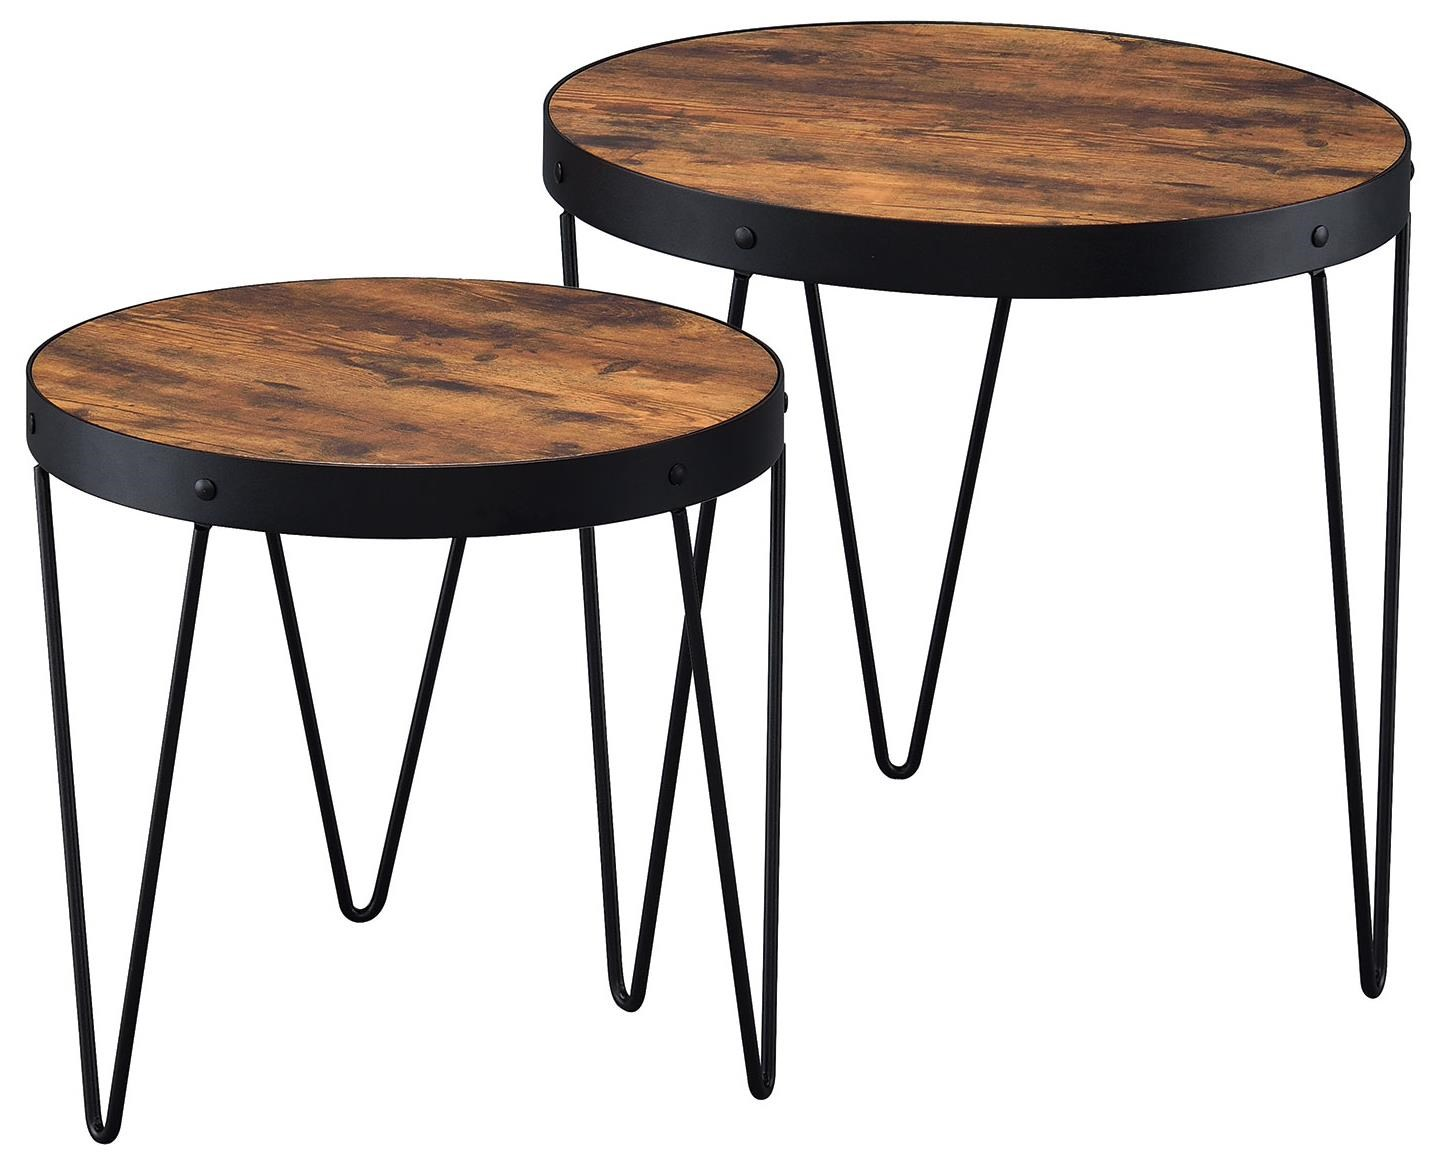 Coaster Nesting Tables 2 Piece Nesting Table Set With Hairpin Legs   Prime  Brothers Furniture   End Tables